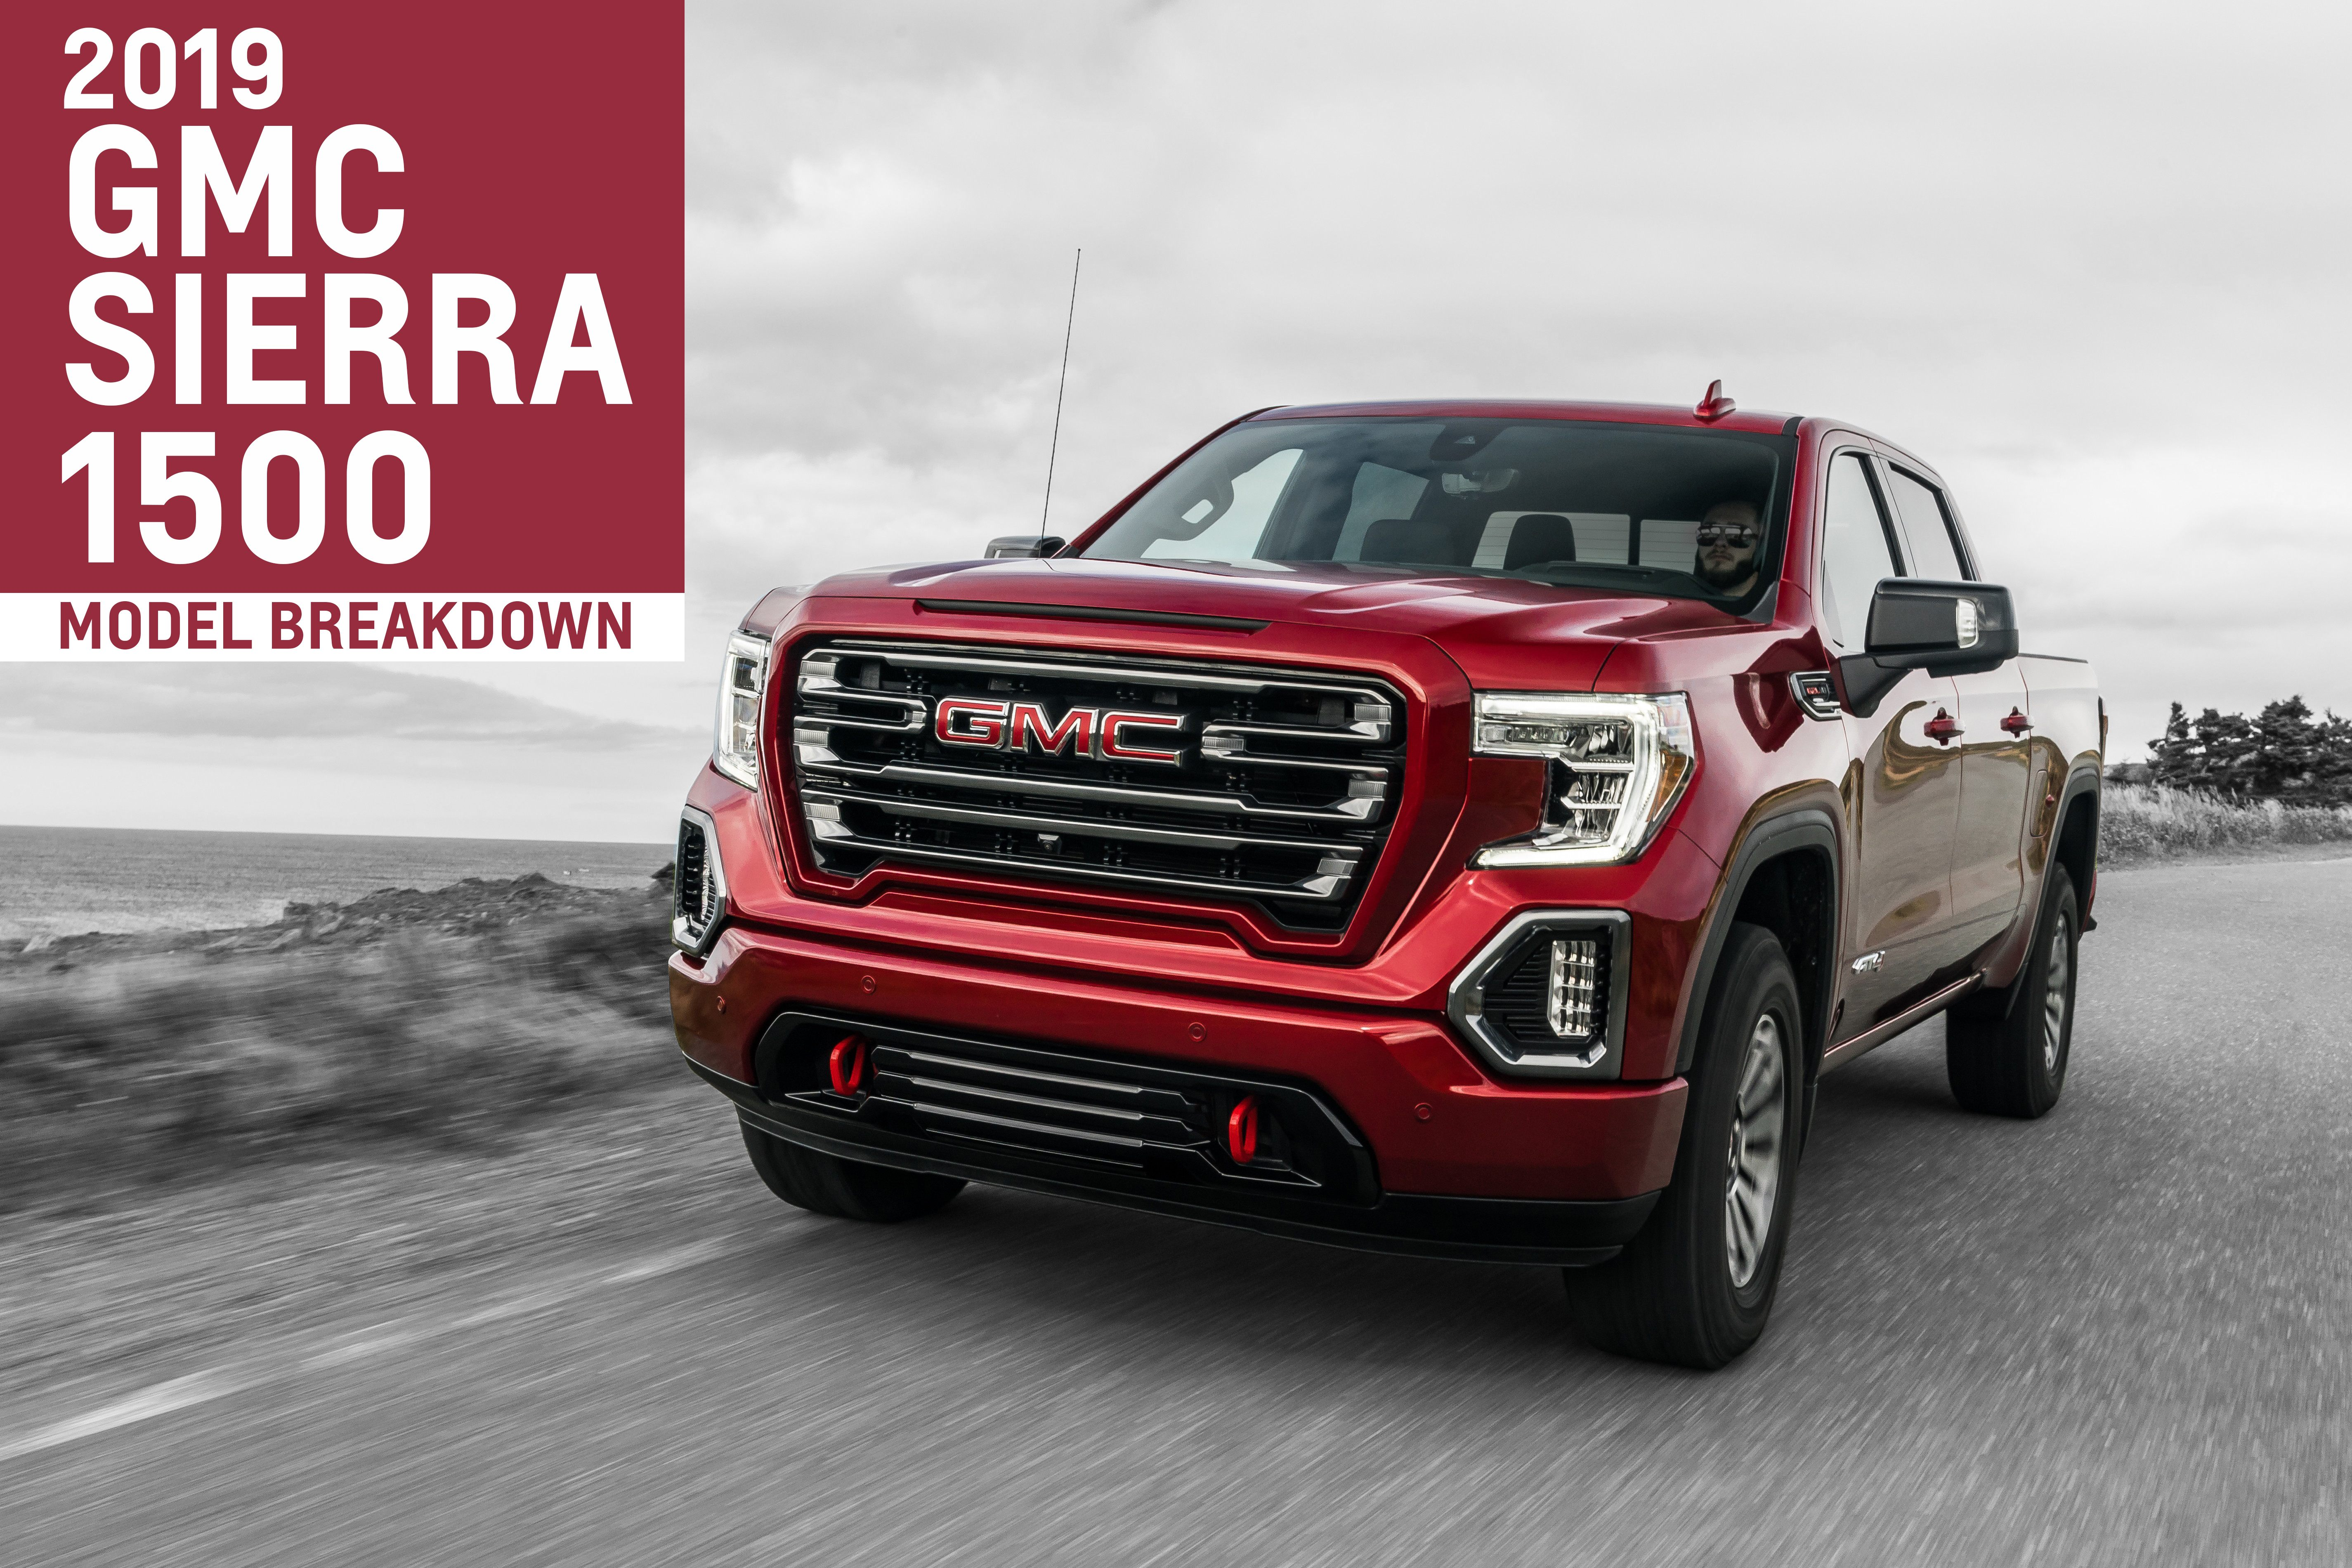 2019 GMC Sierra 1500 - Ultimate Buying Guide - Wallace Chevrolet